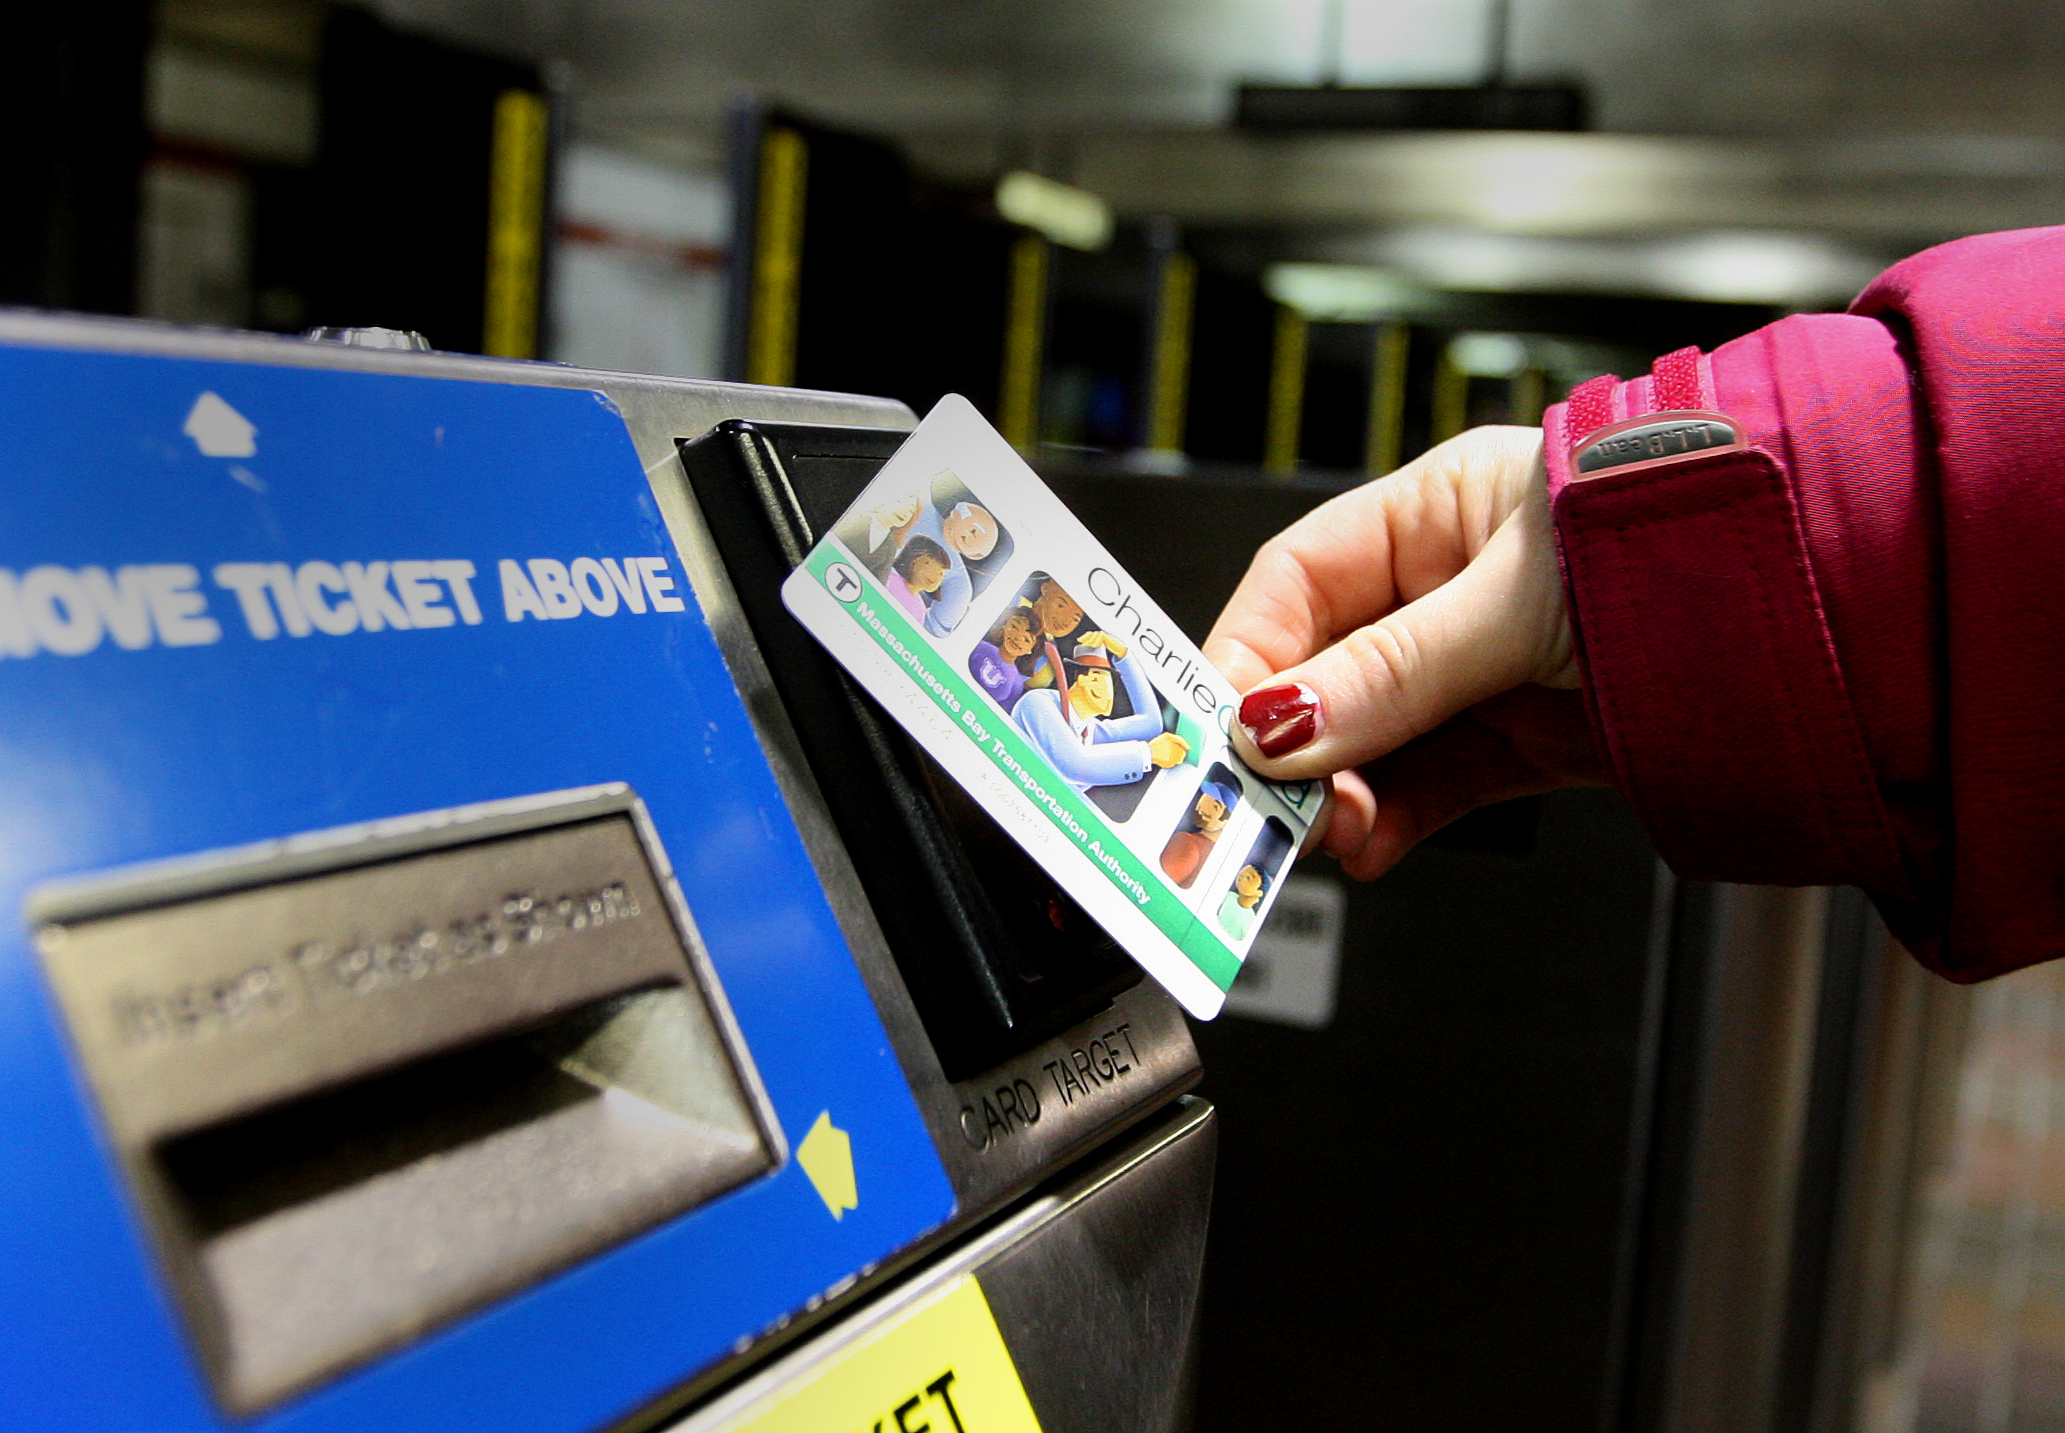 MBTA to phase out cash tickets on buses, trains - The Boston